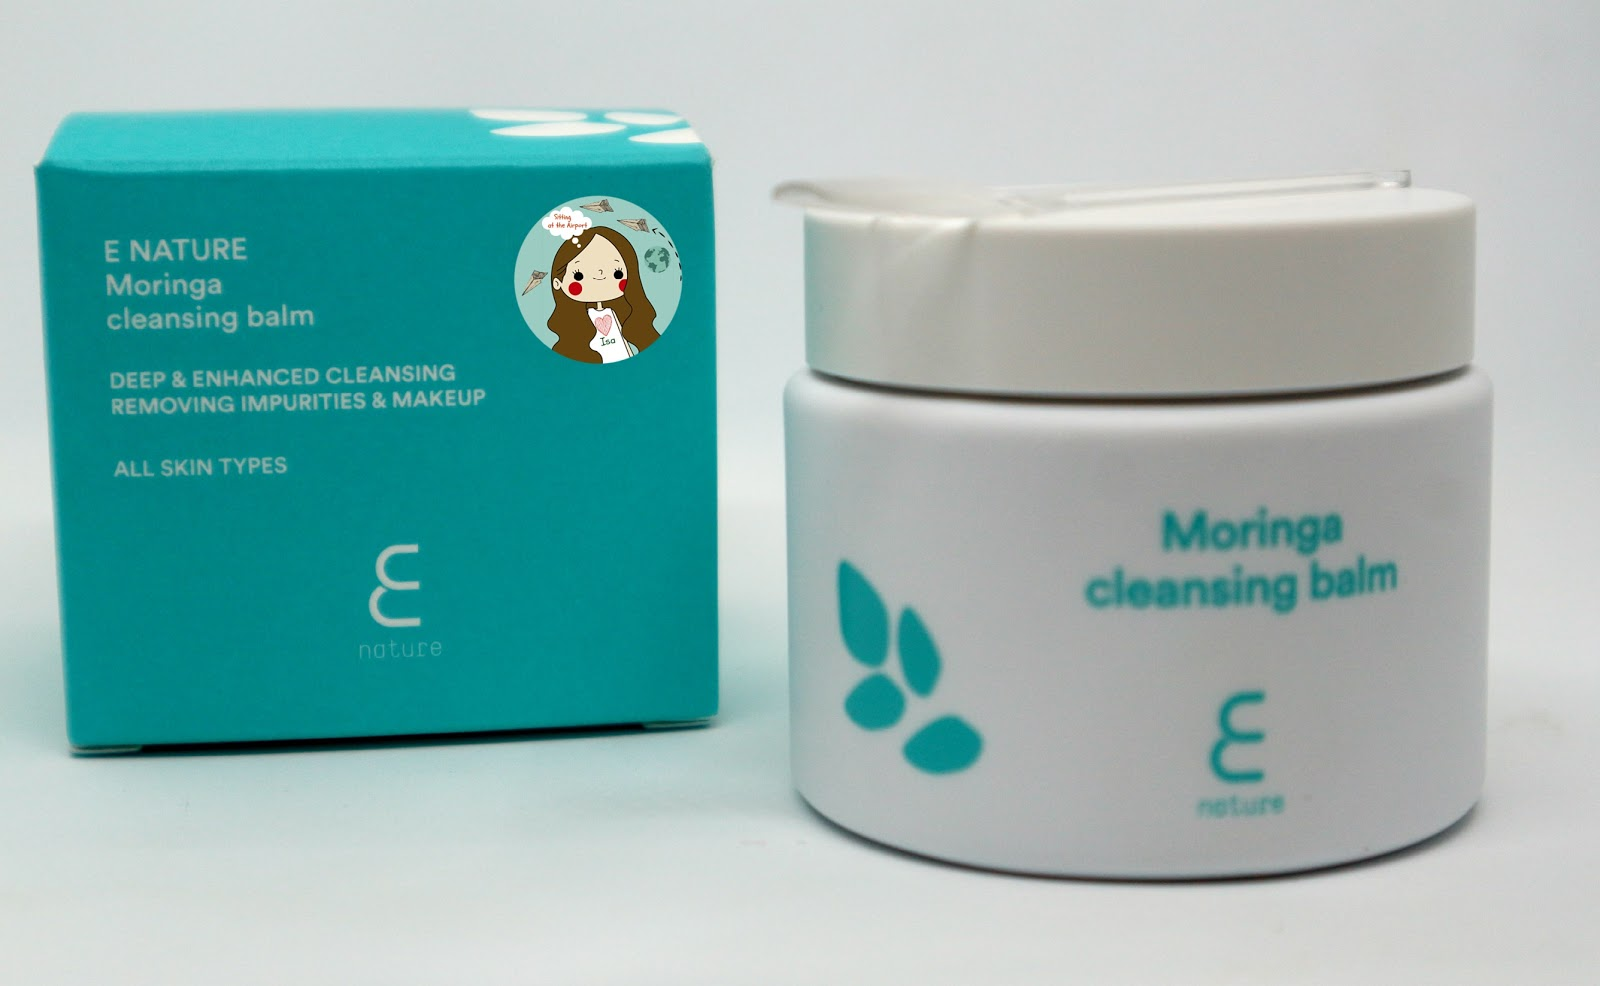 Enature Moringa Cleansing balm review